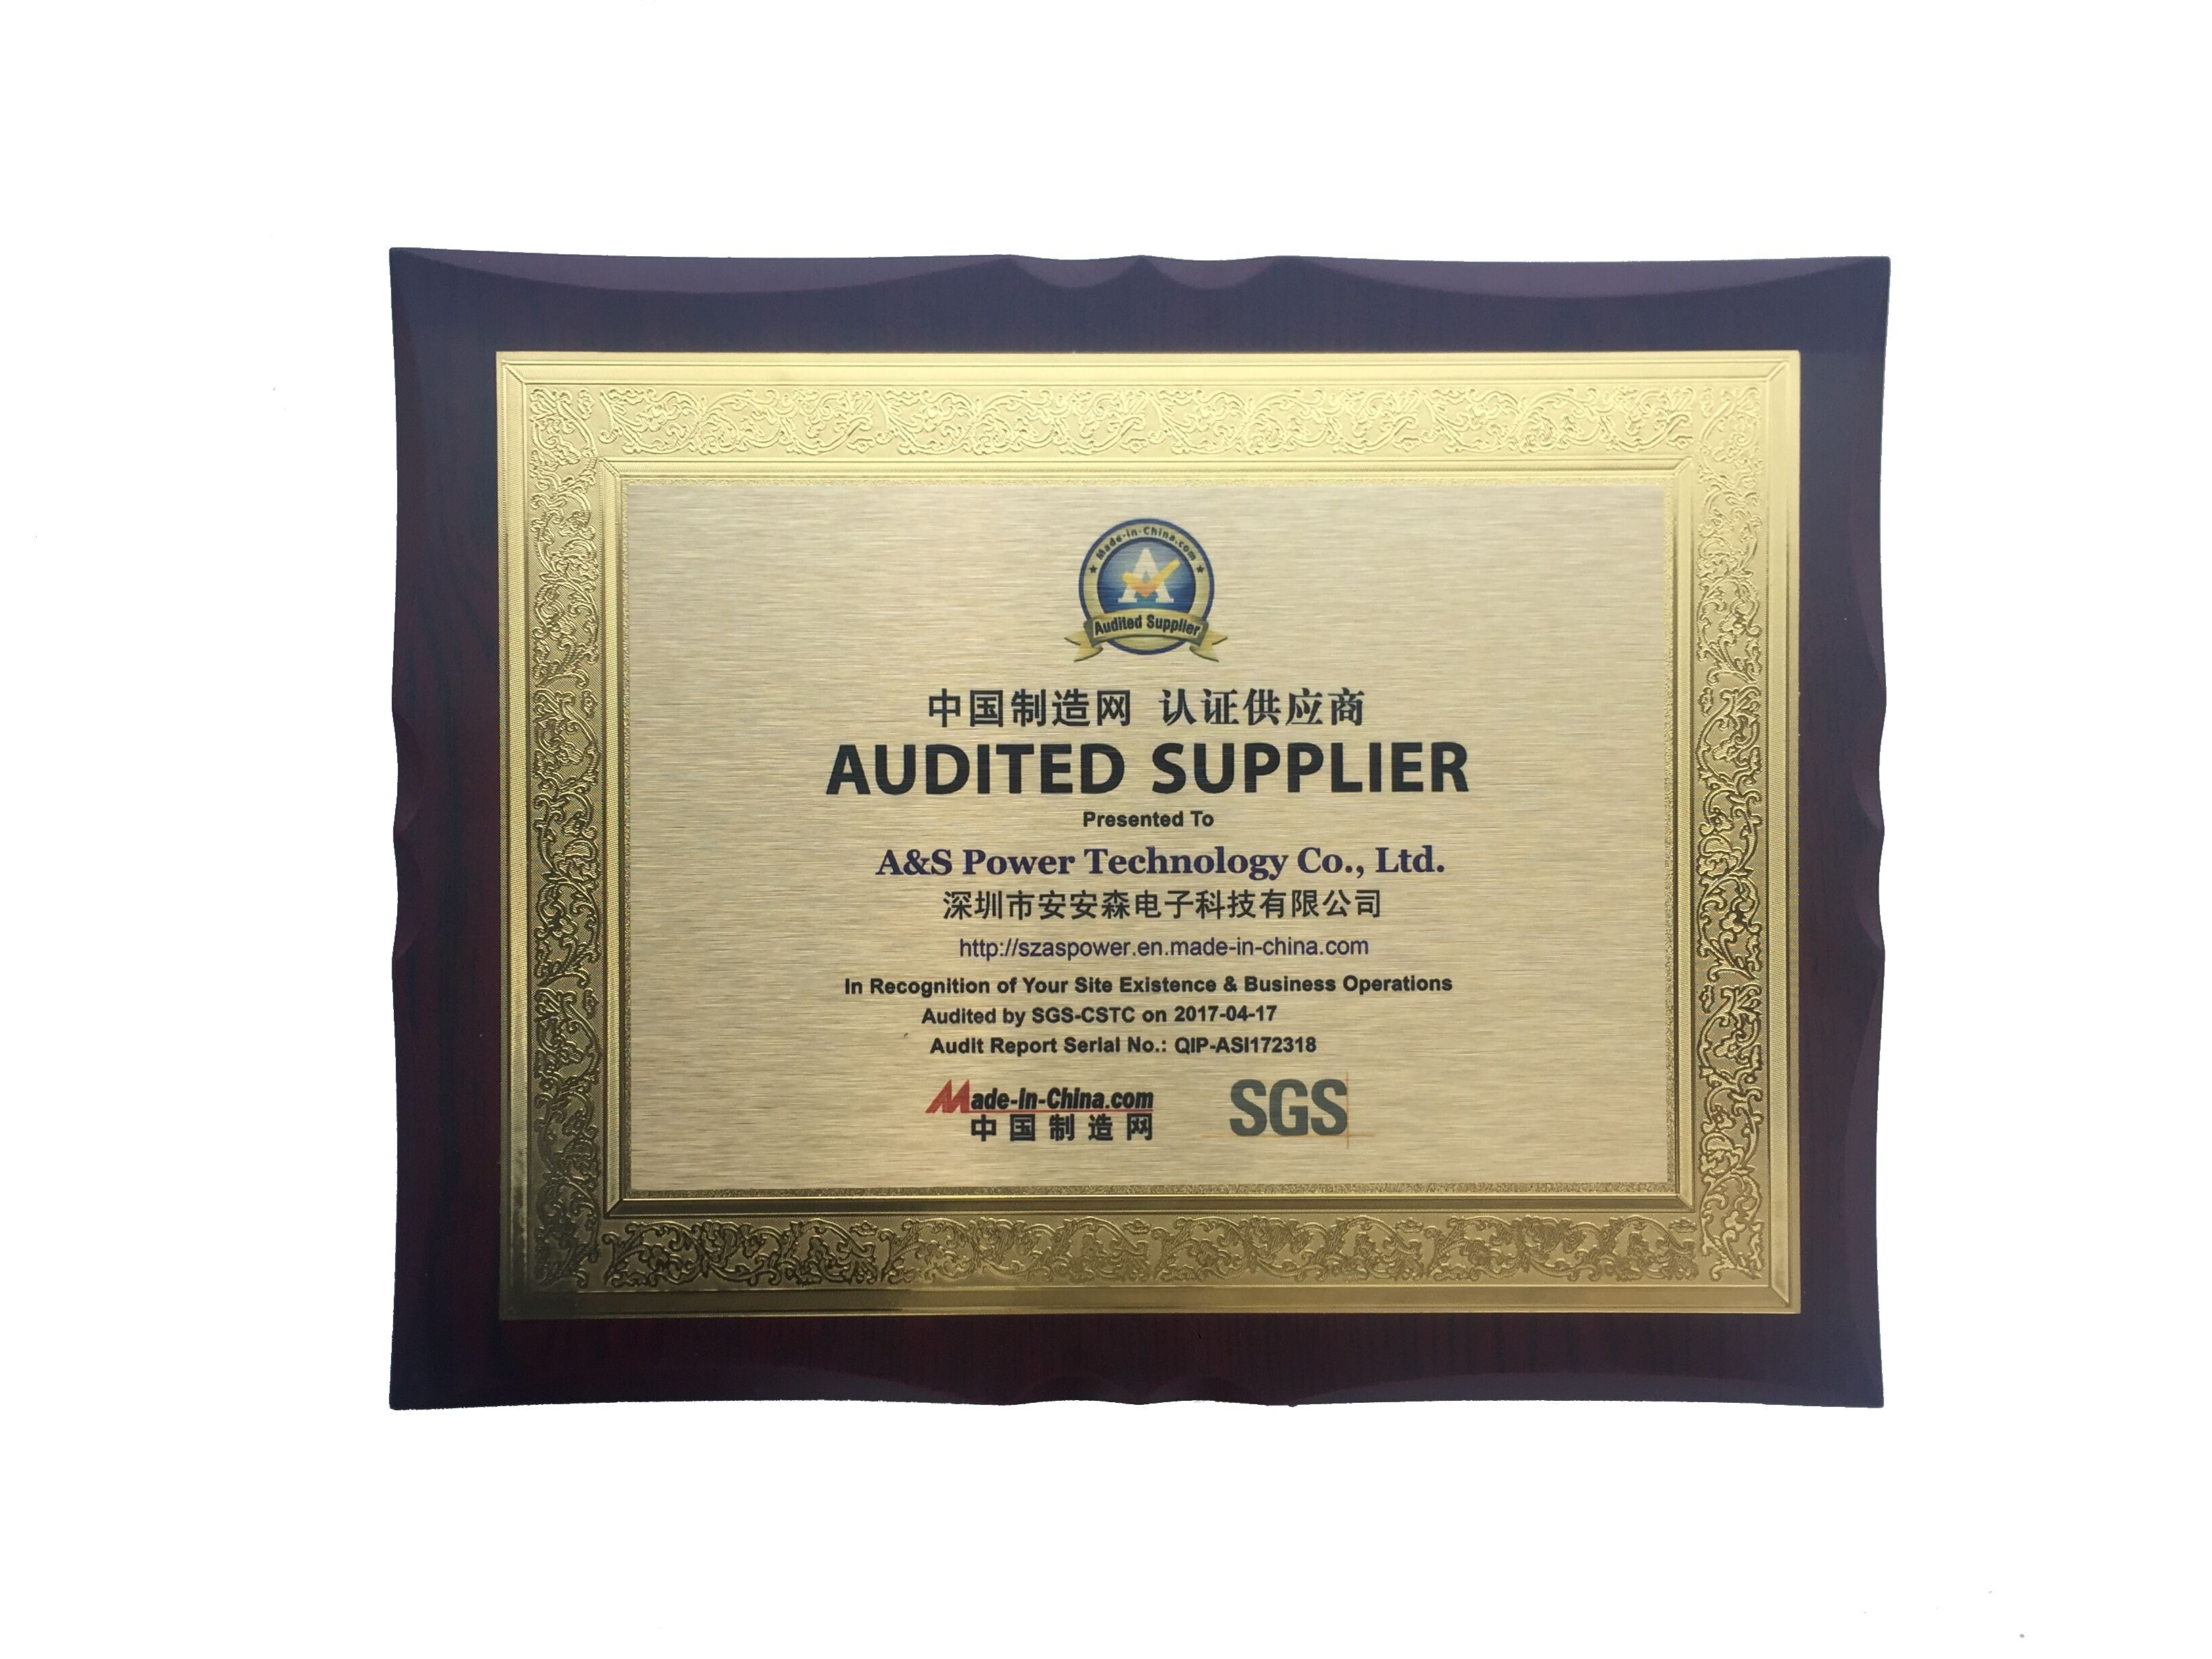 A&S Power made in china audited supplier